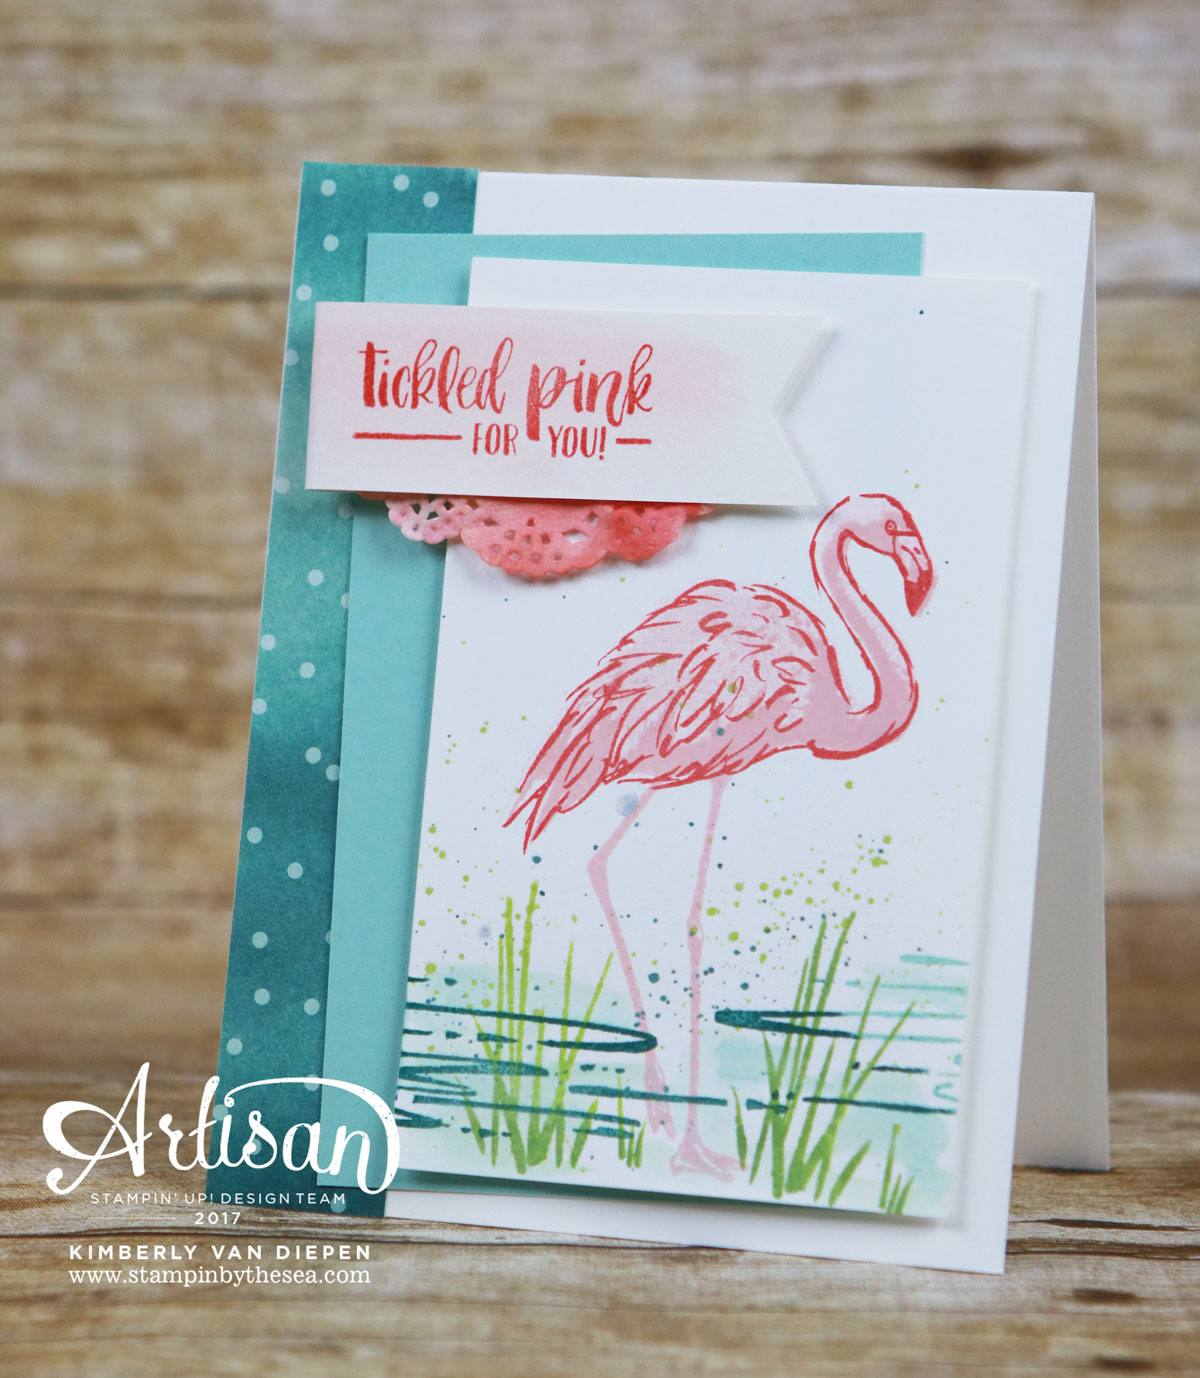 Friends and Flamingos, Fabulous Flamingos, Stampin' Up!